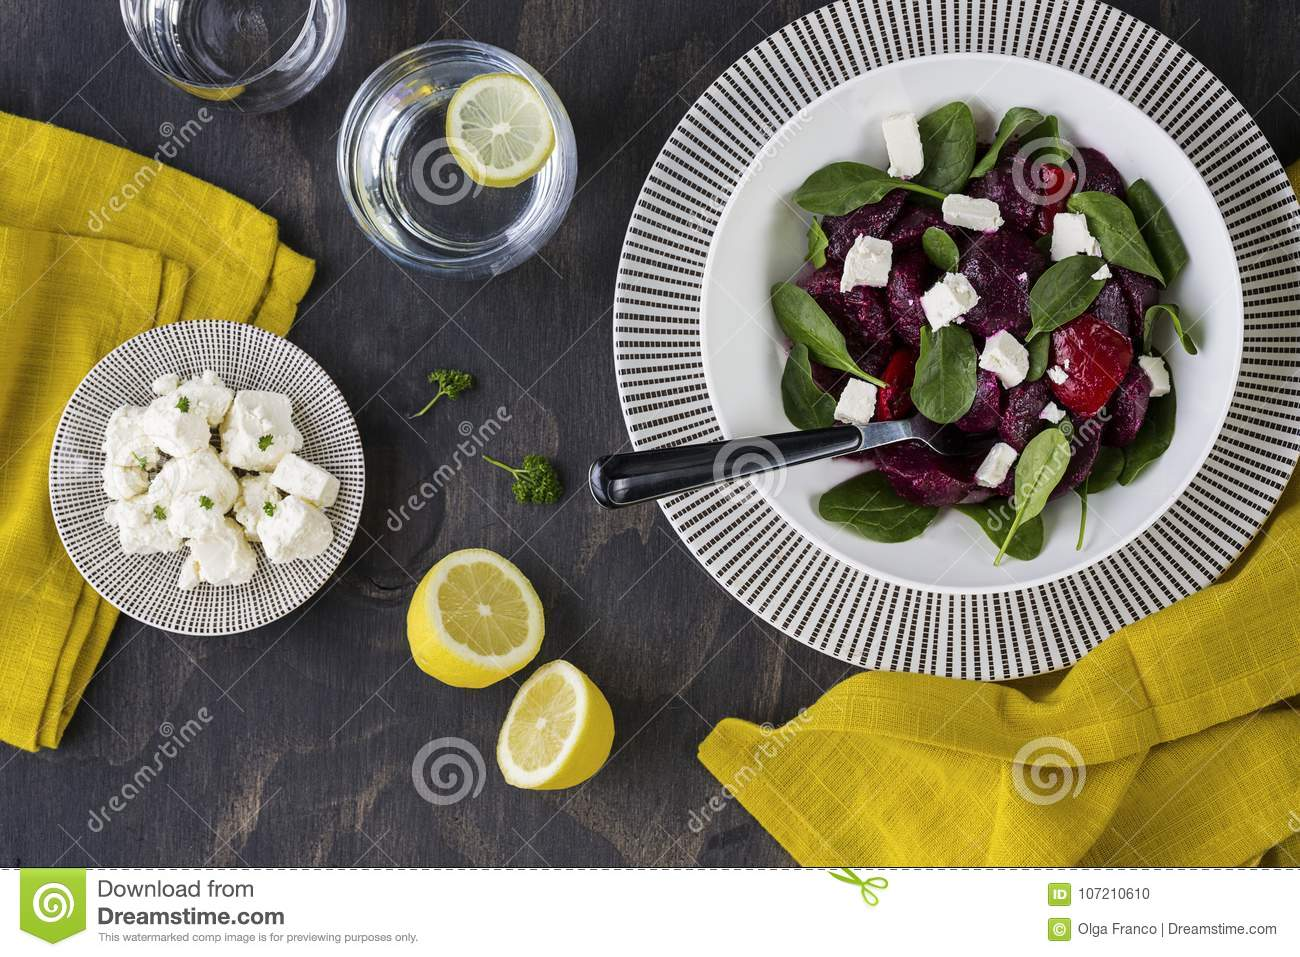 Beetroot, feta and spinach salad